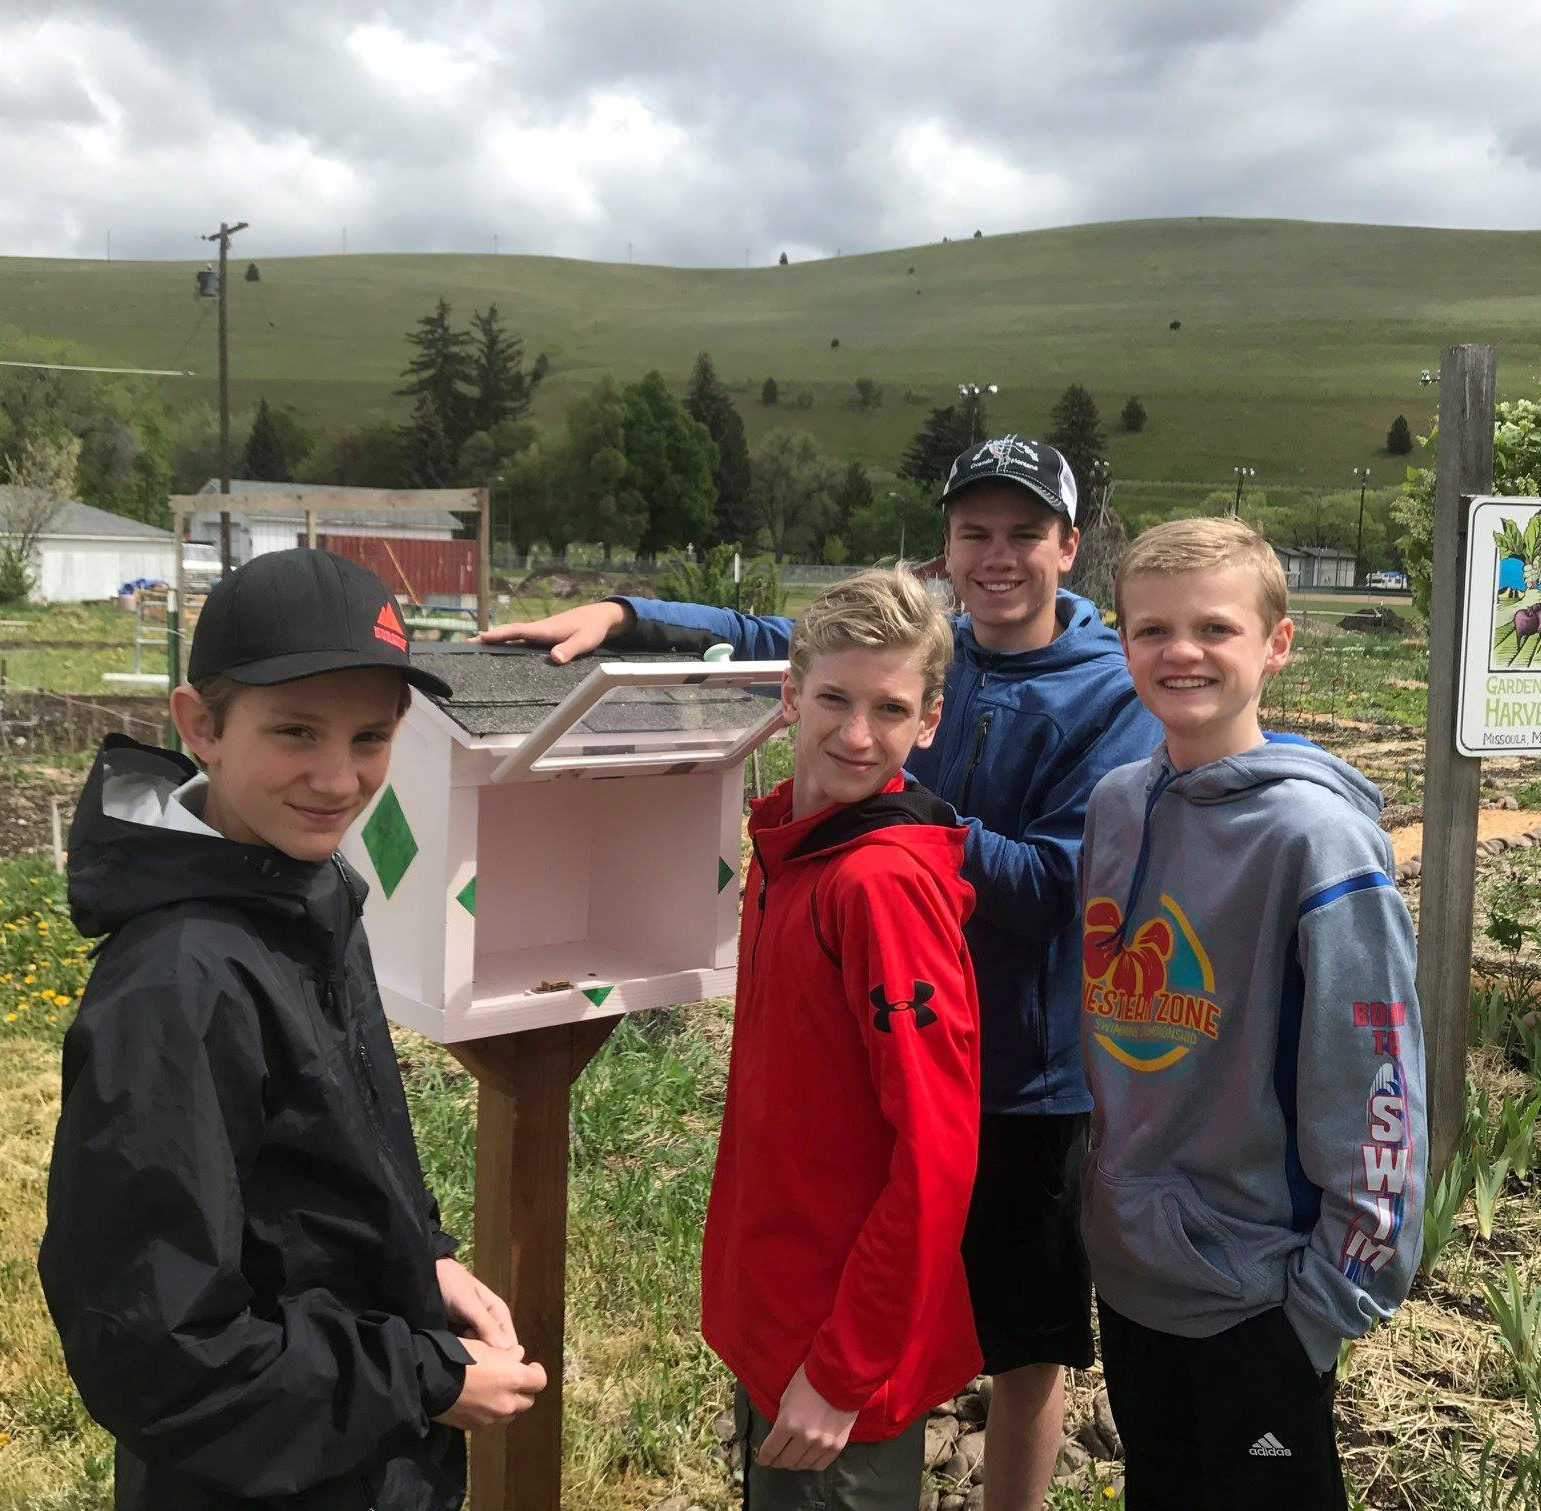 Four Boy Scouts smile after placing a new handcrafted little free library box in front of a community garden as volunteer work.